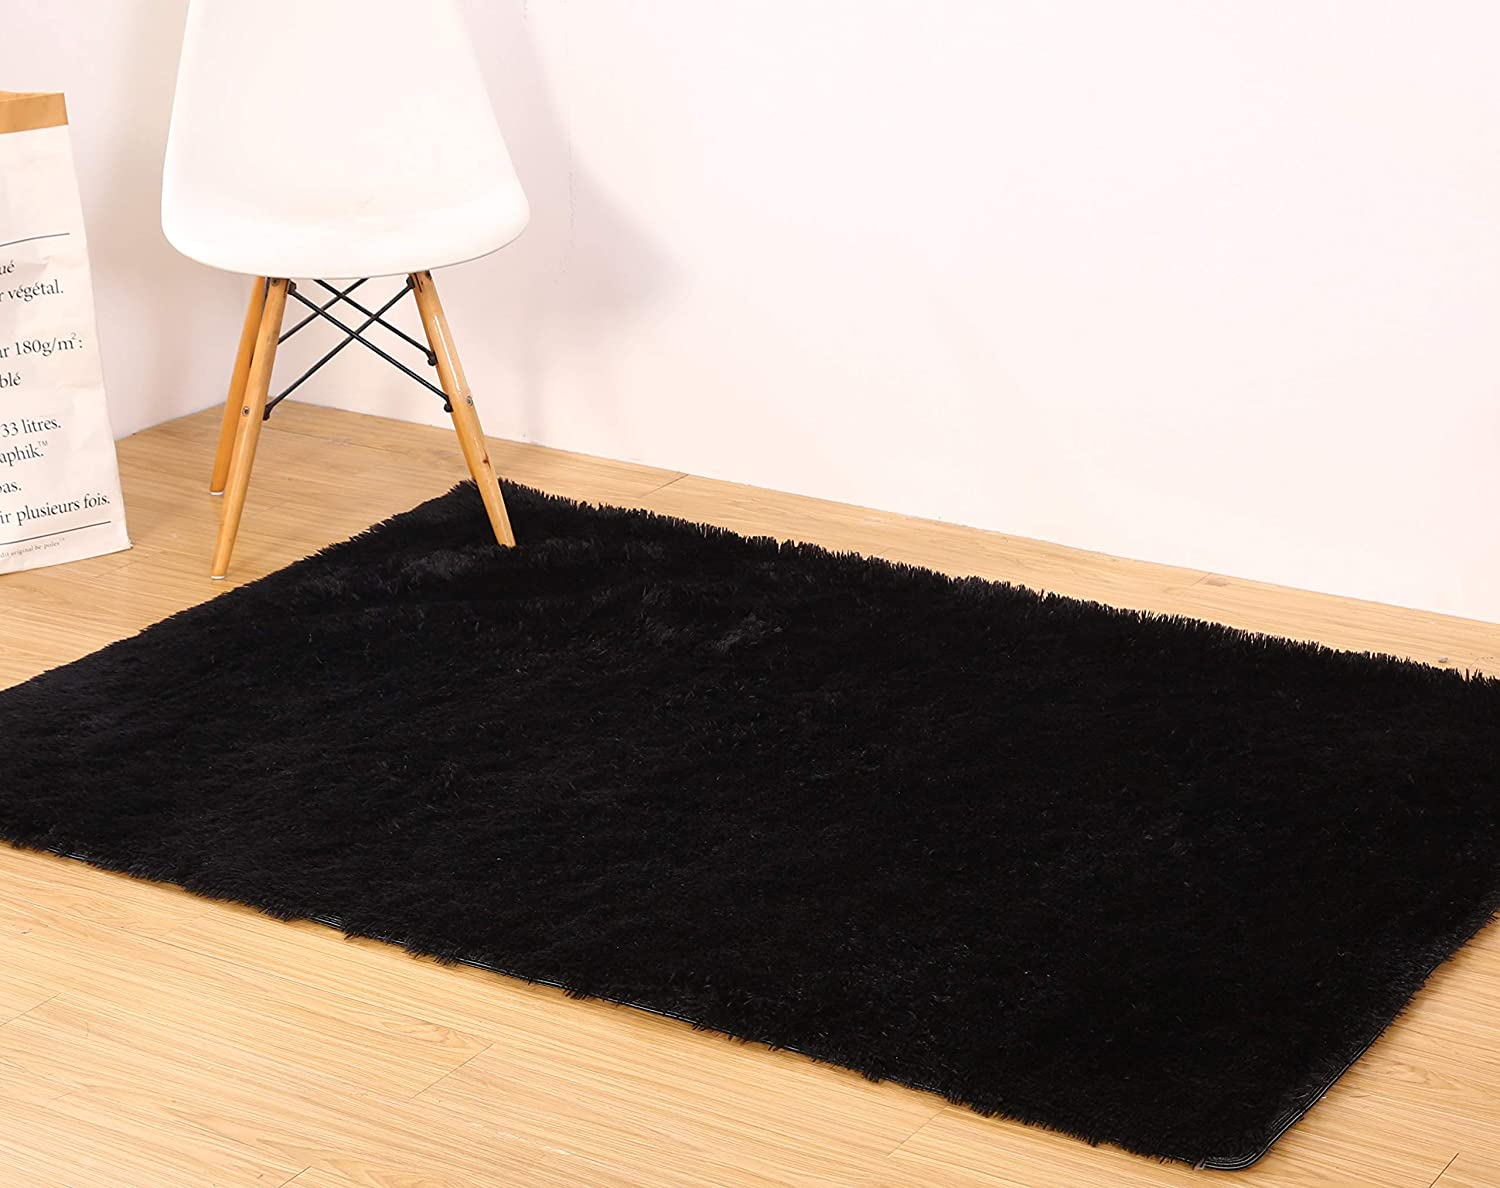 Shaggy Rugs Soft Pile Plain Thick Non Shed Comfort Modern  Small /& Large Sizes